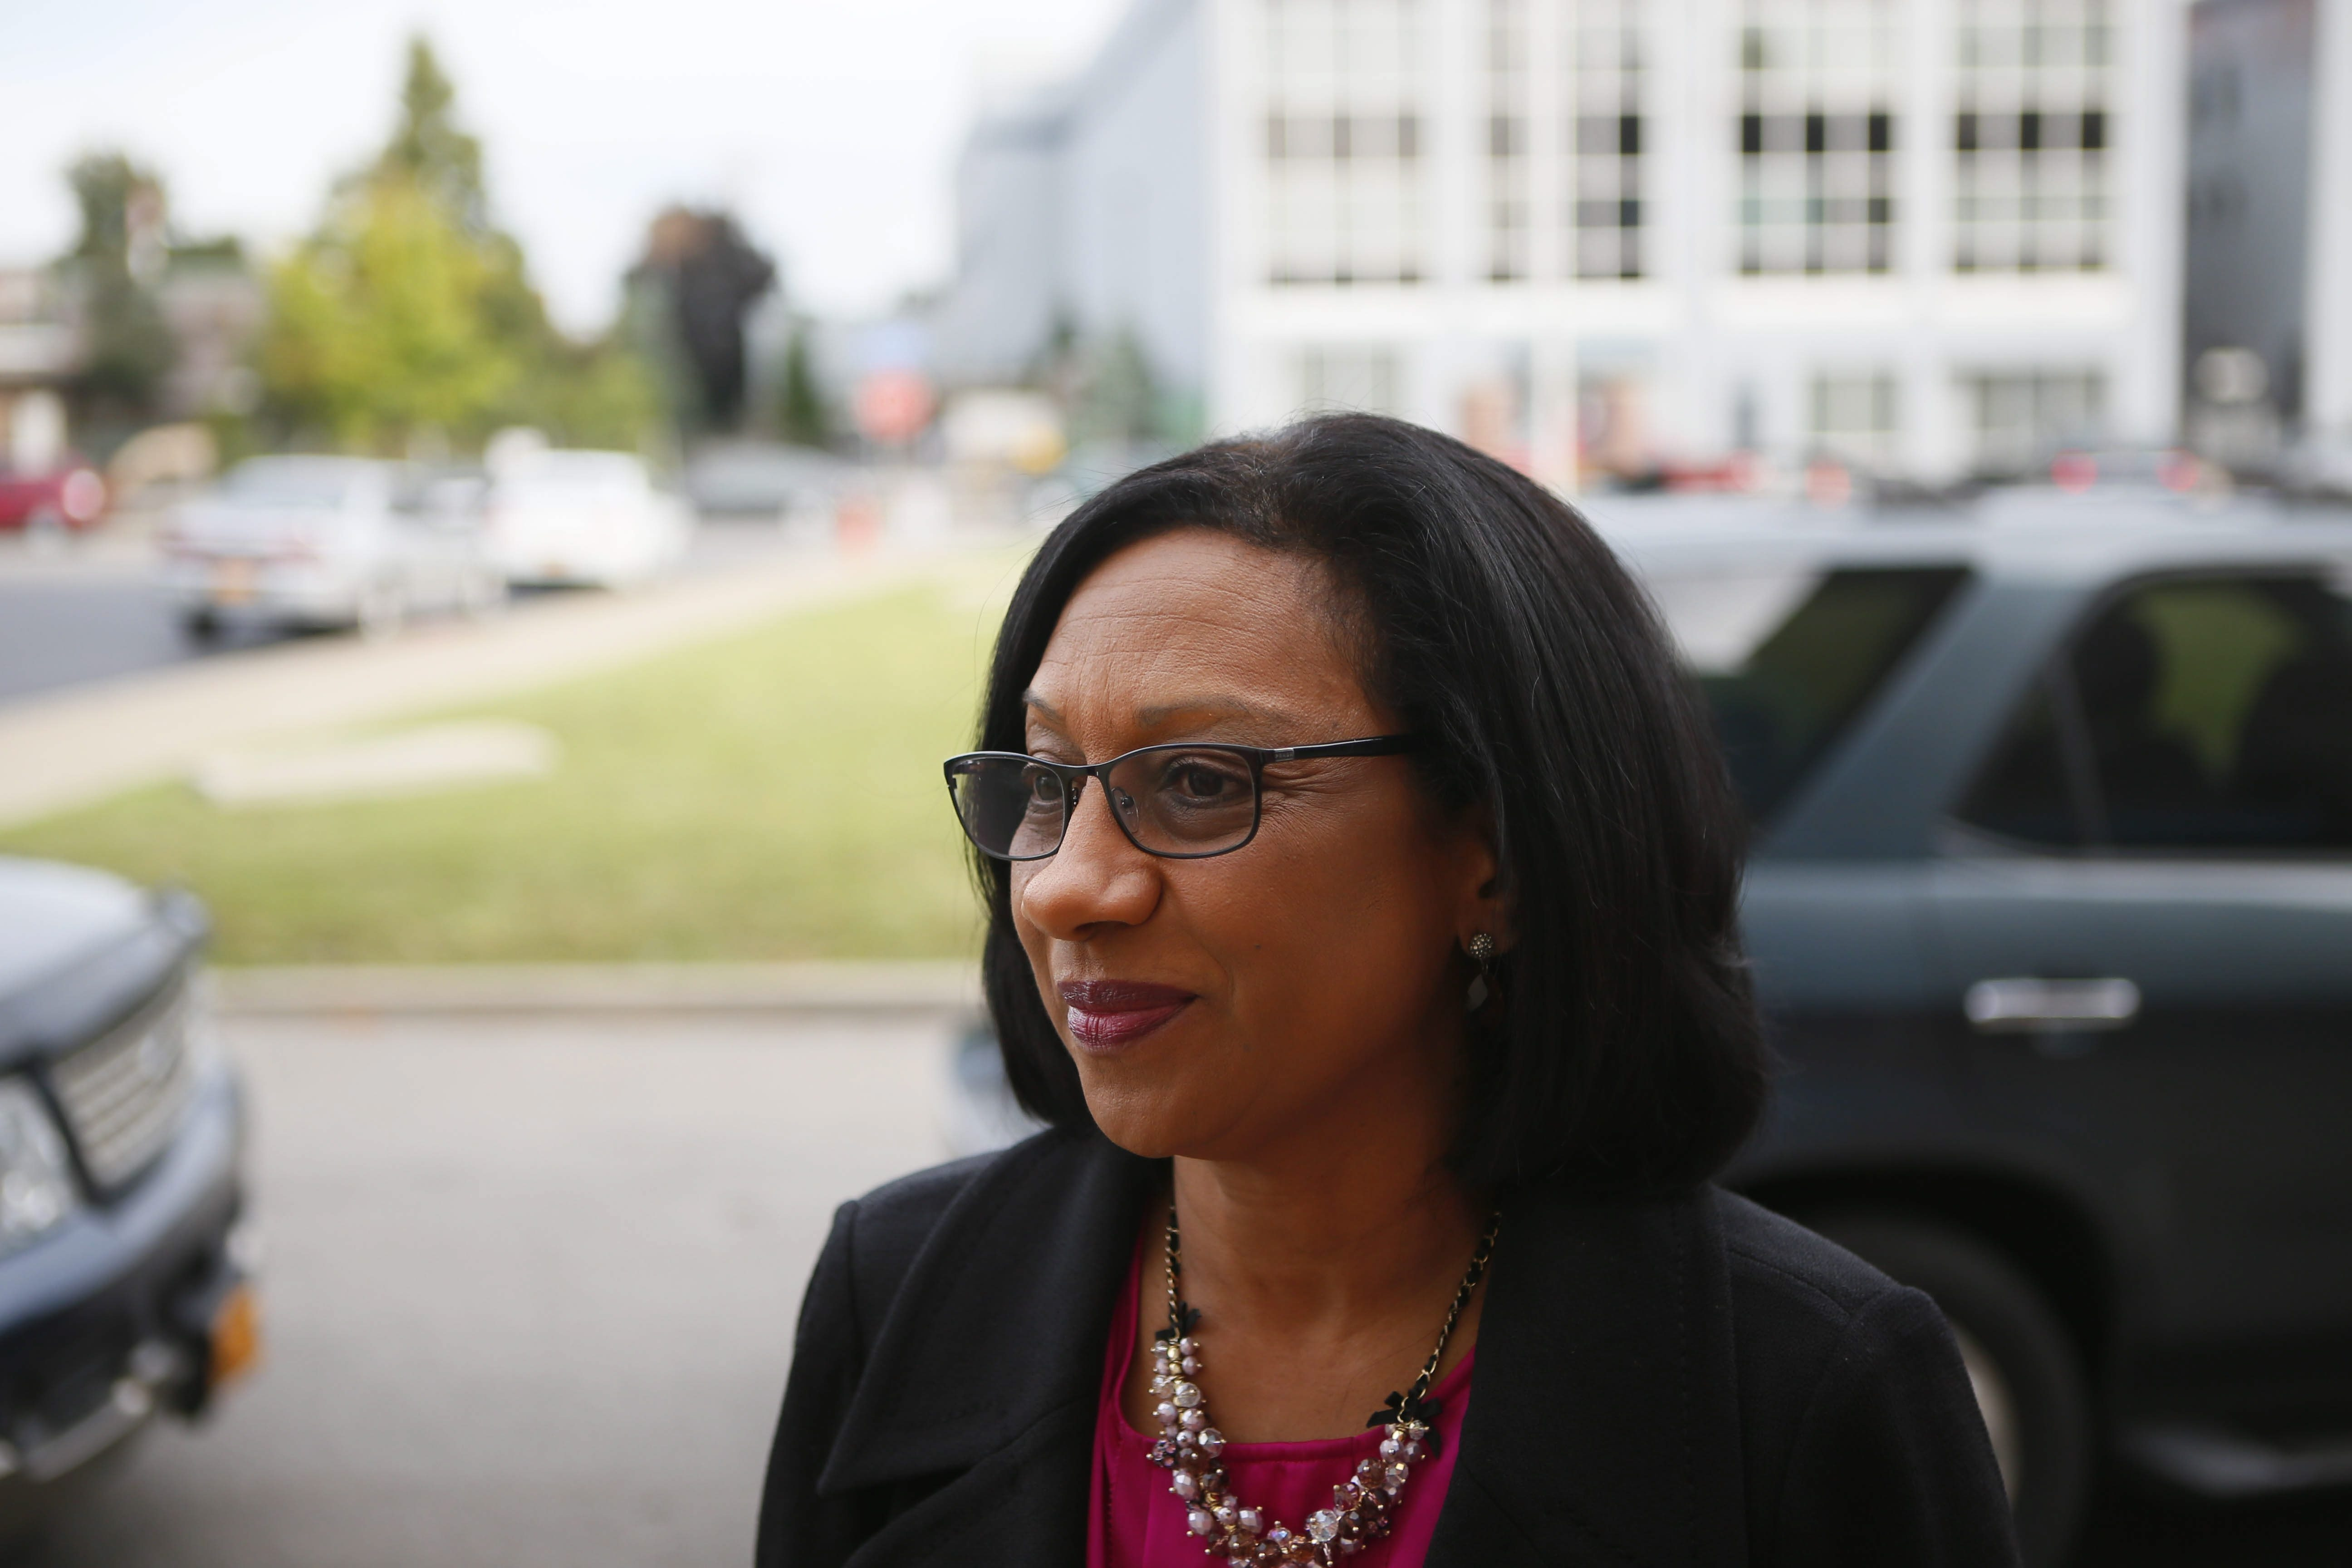 School Superintendent Pamela Brown's attempt to reorganize district staff ran into opposition on many fronts. (Derek Gee/Buffalo News file photo)